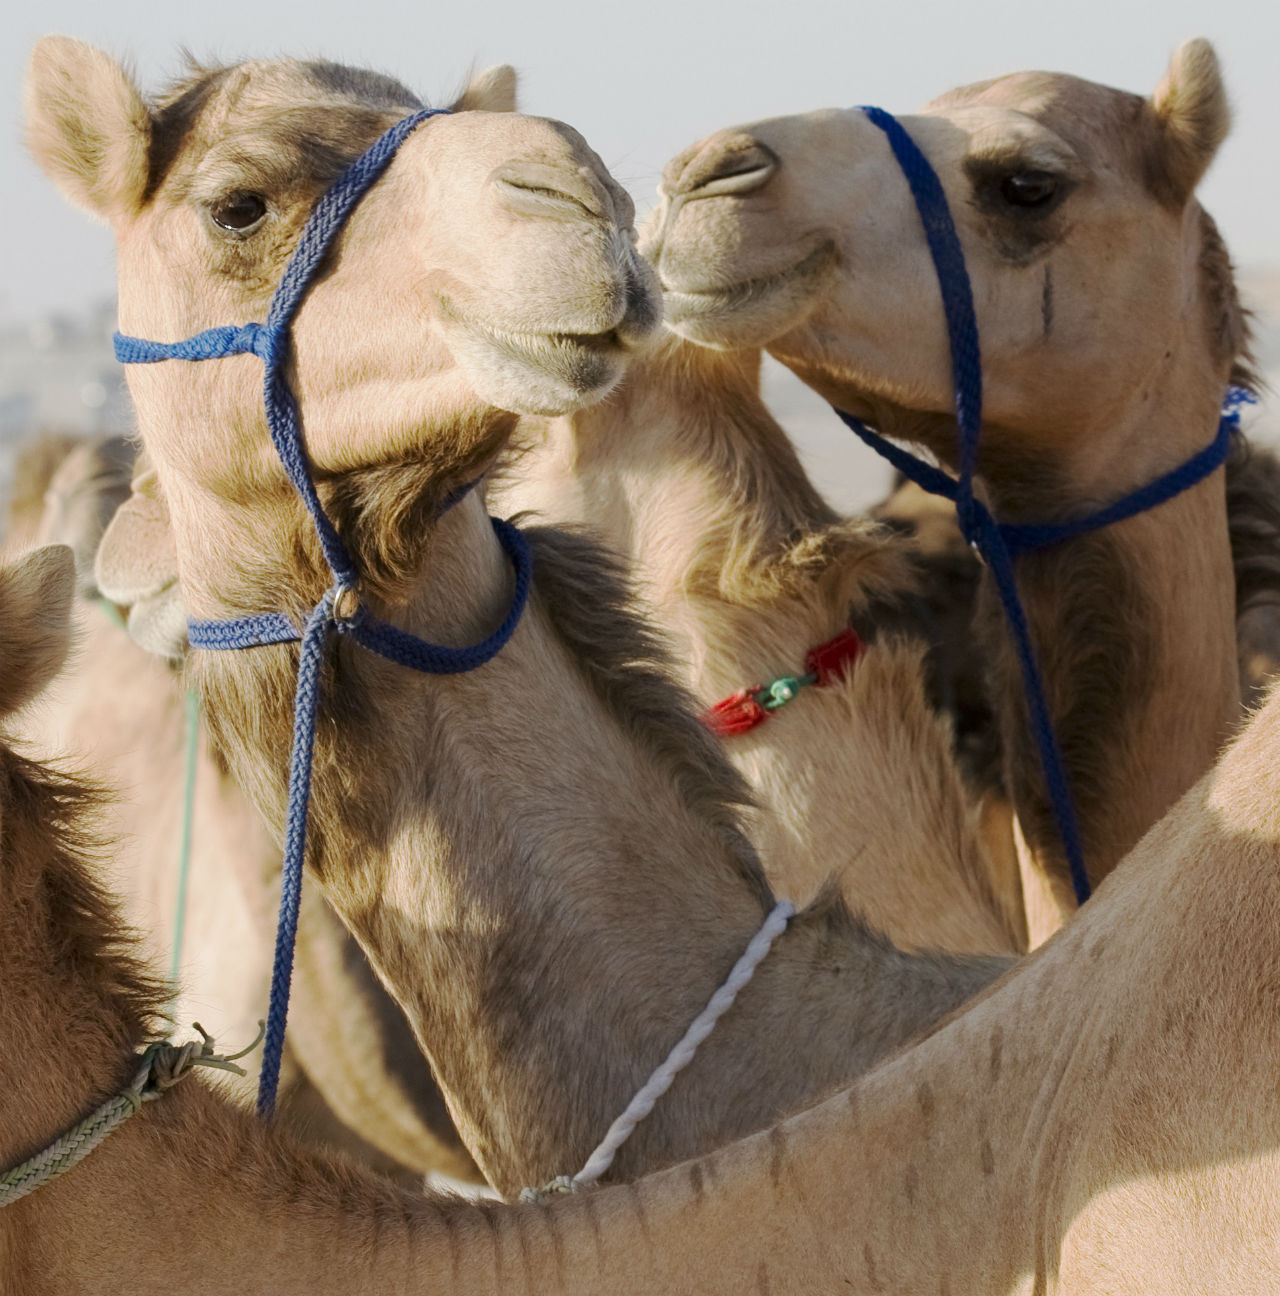 The Al Ain Camel Market is as authentic as it gets